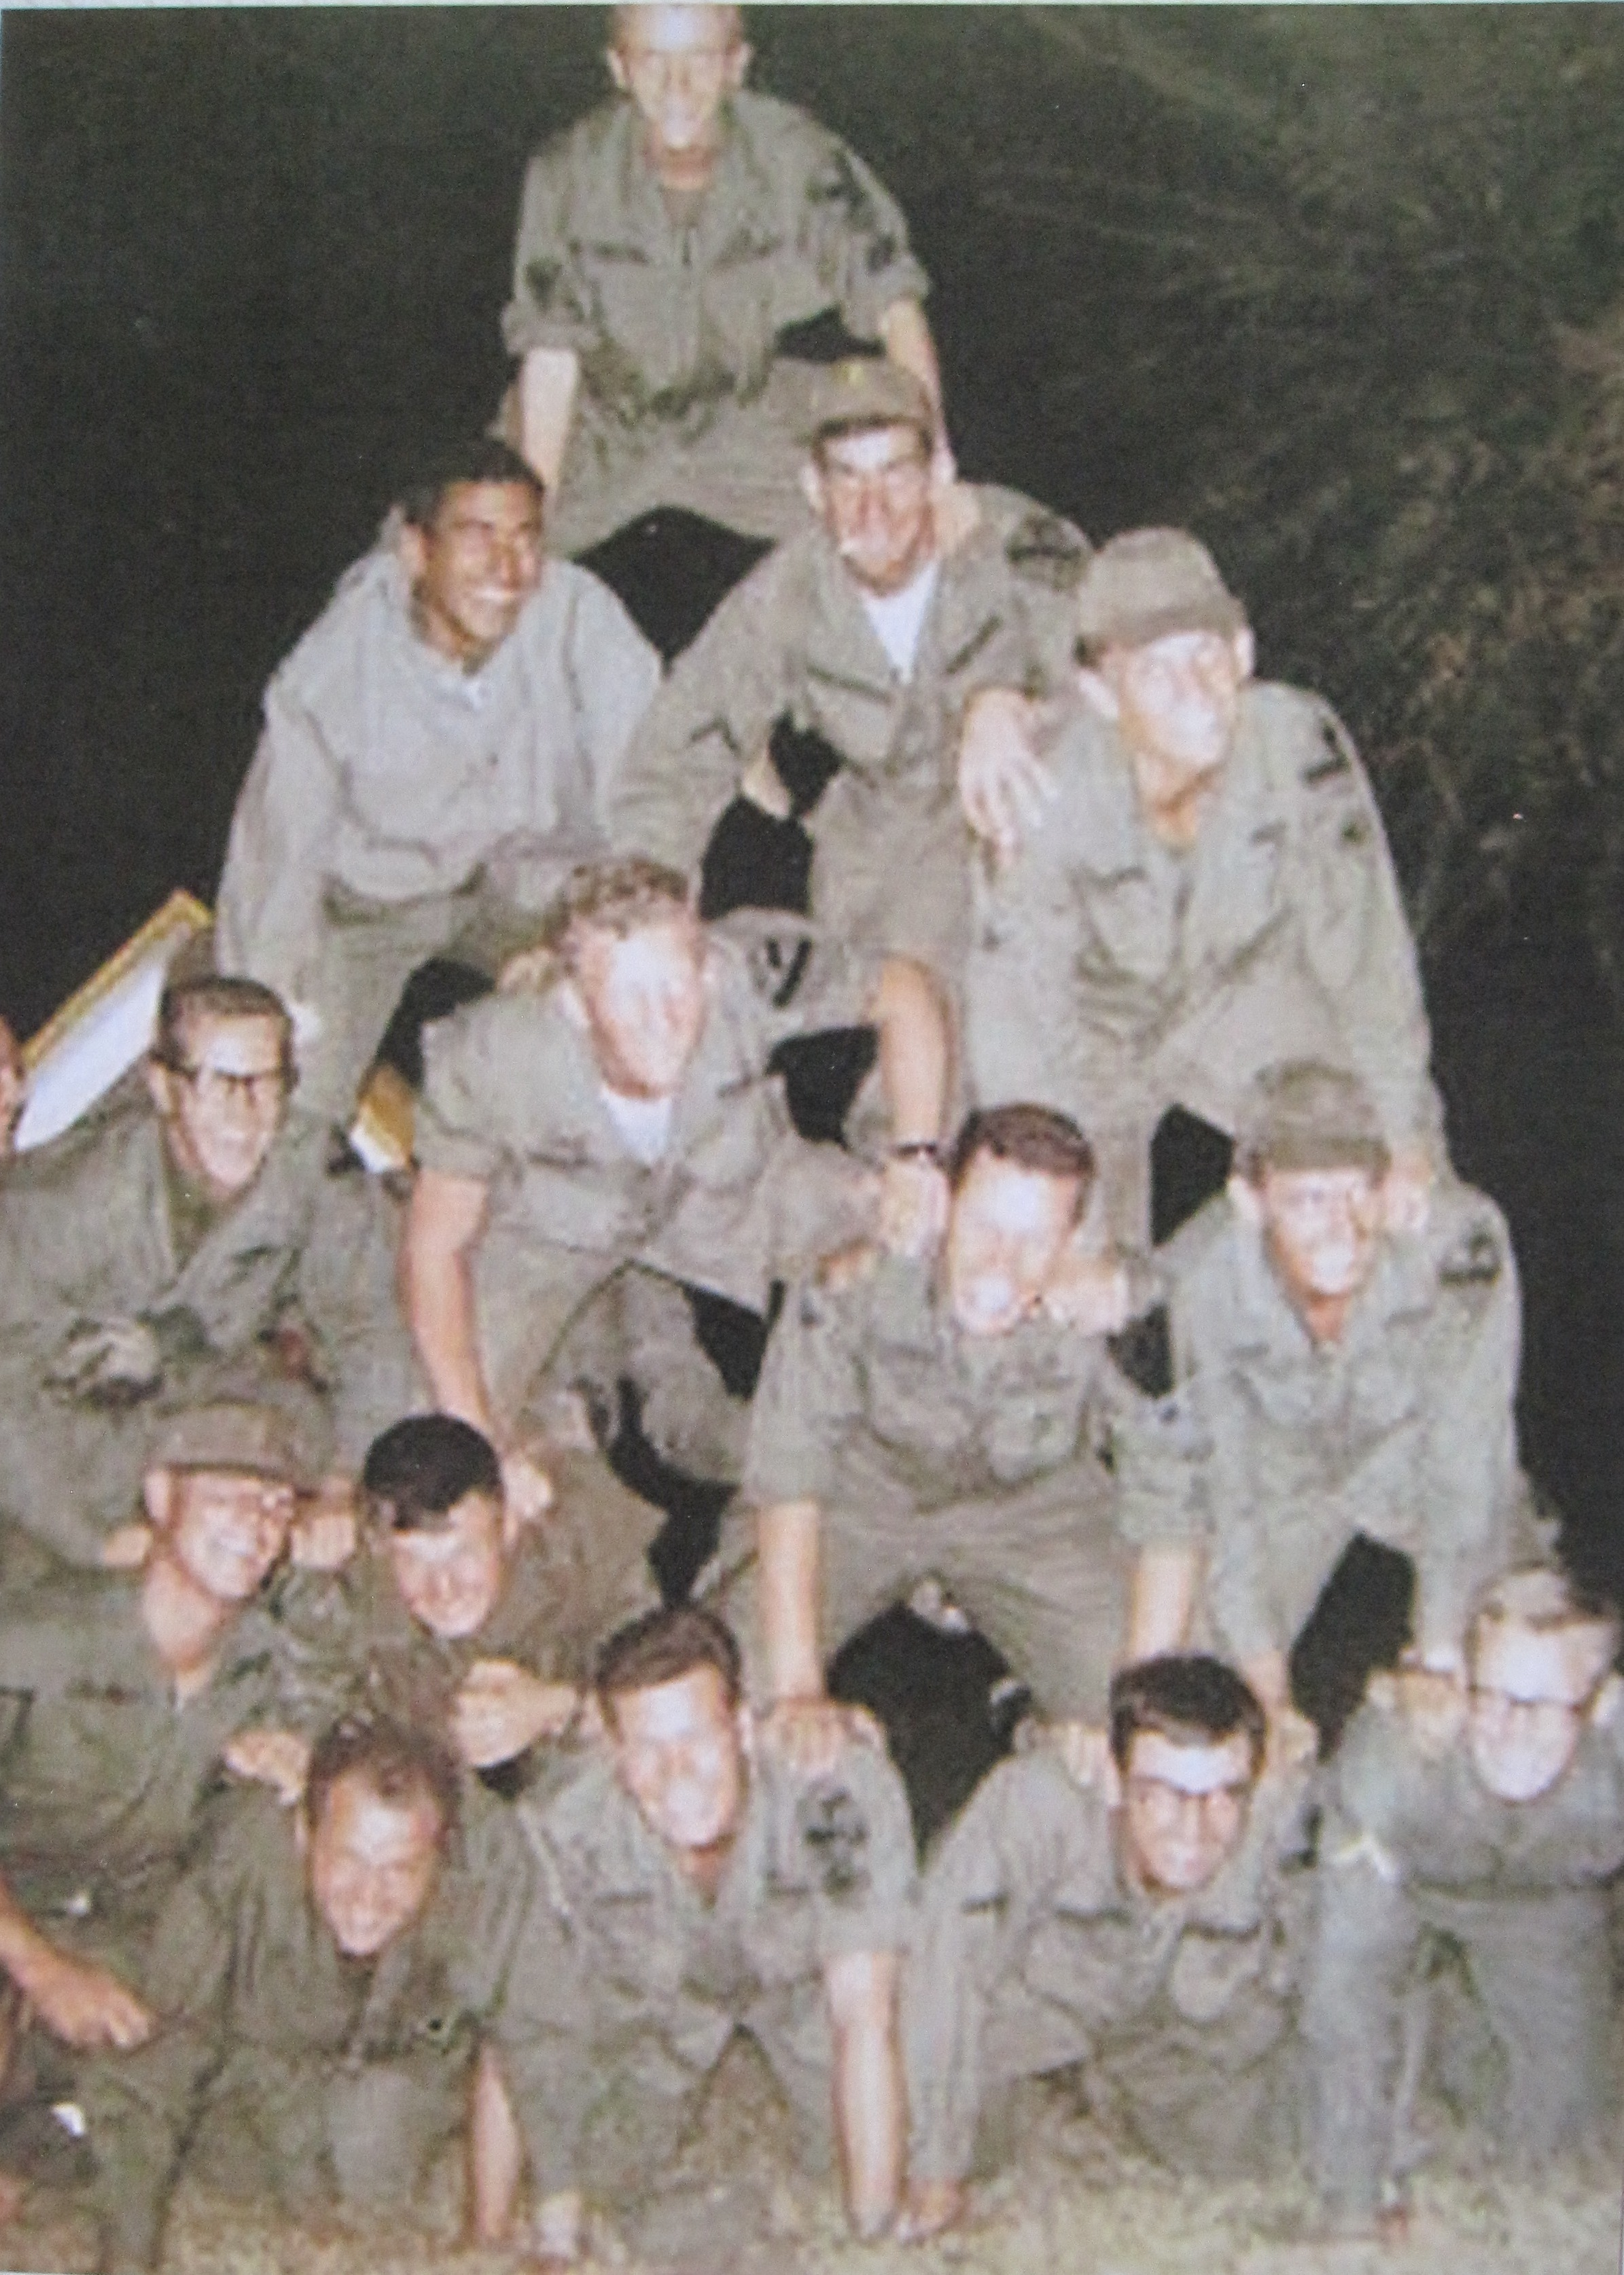 LRRP Graduation, Camp Radcliff. I'm second from top at left